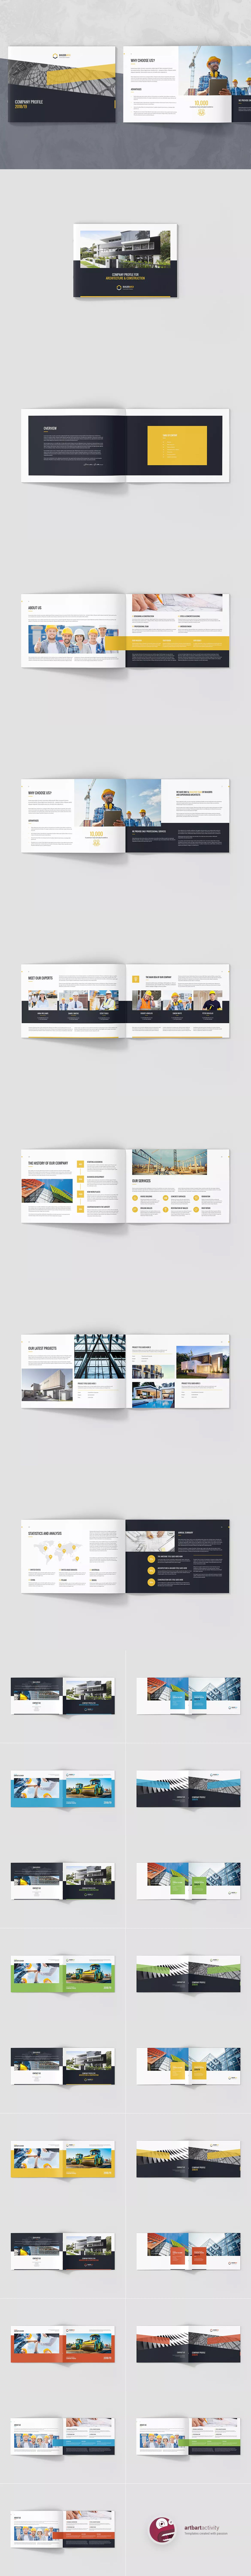 Builderarch Construction Company Profile Template Indesign Indd A4 And Us Letter Size